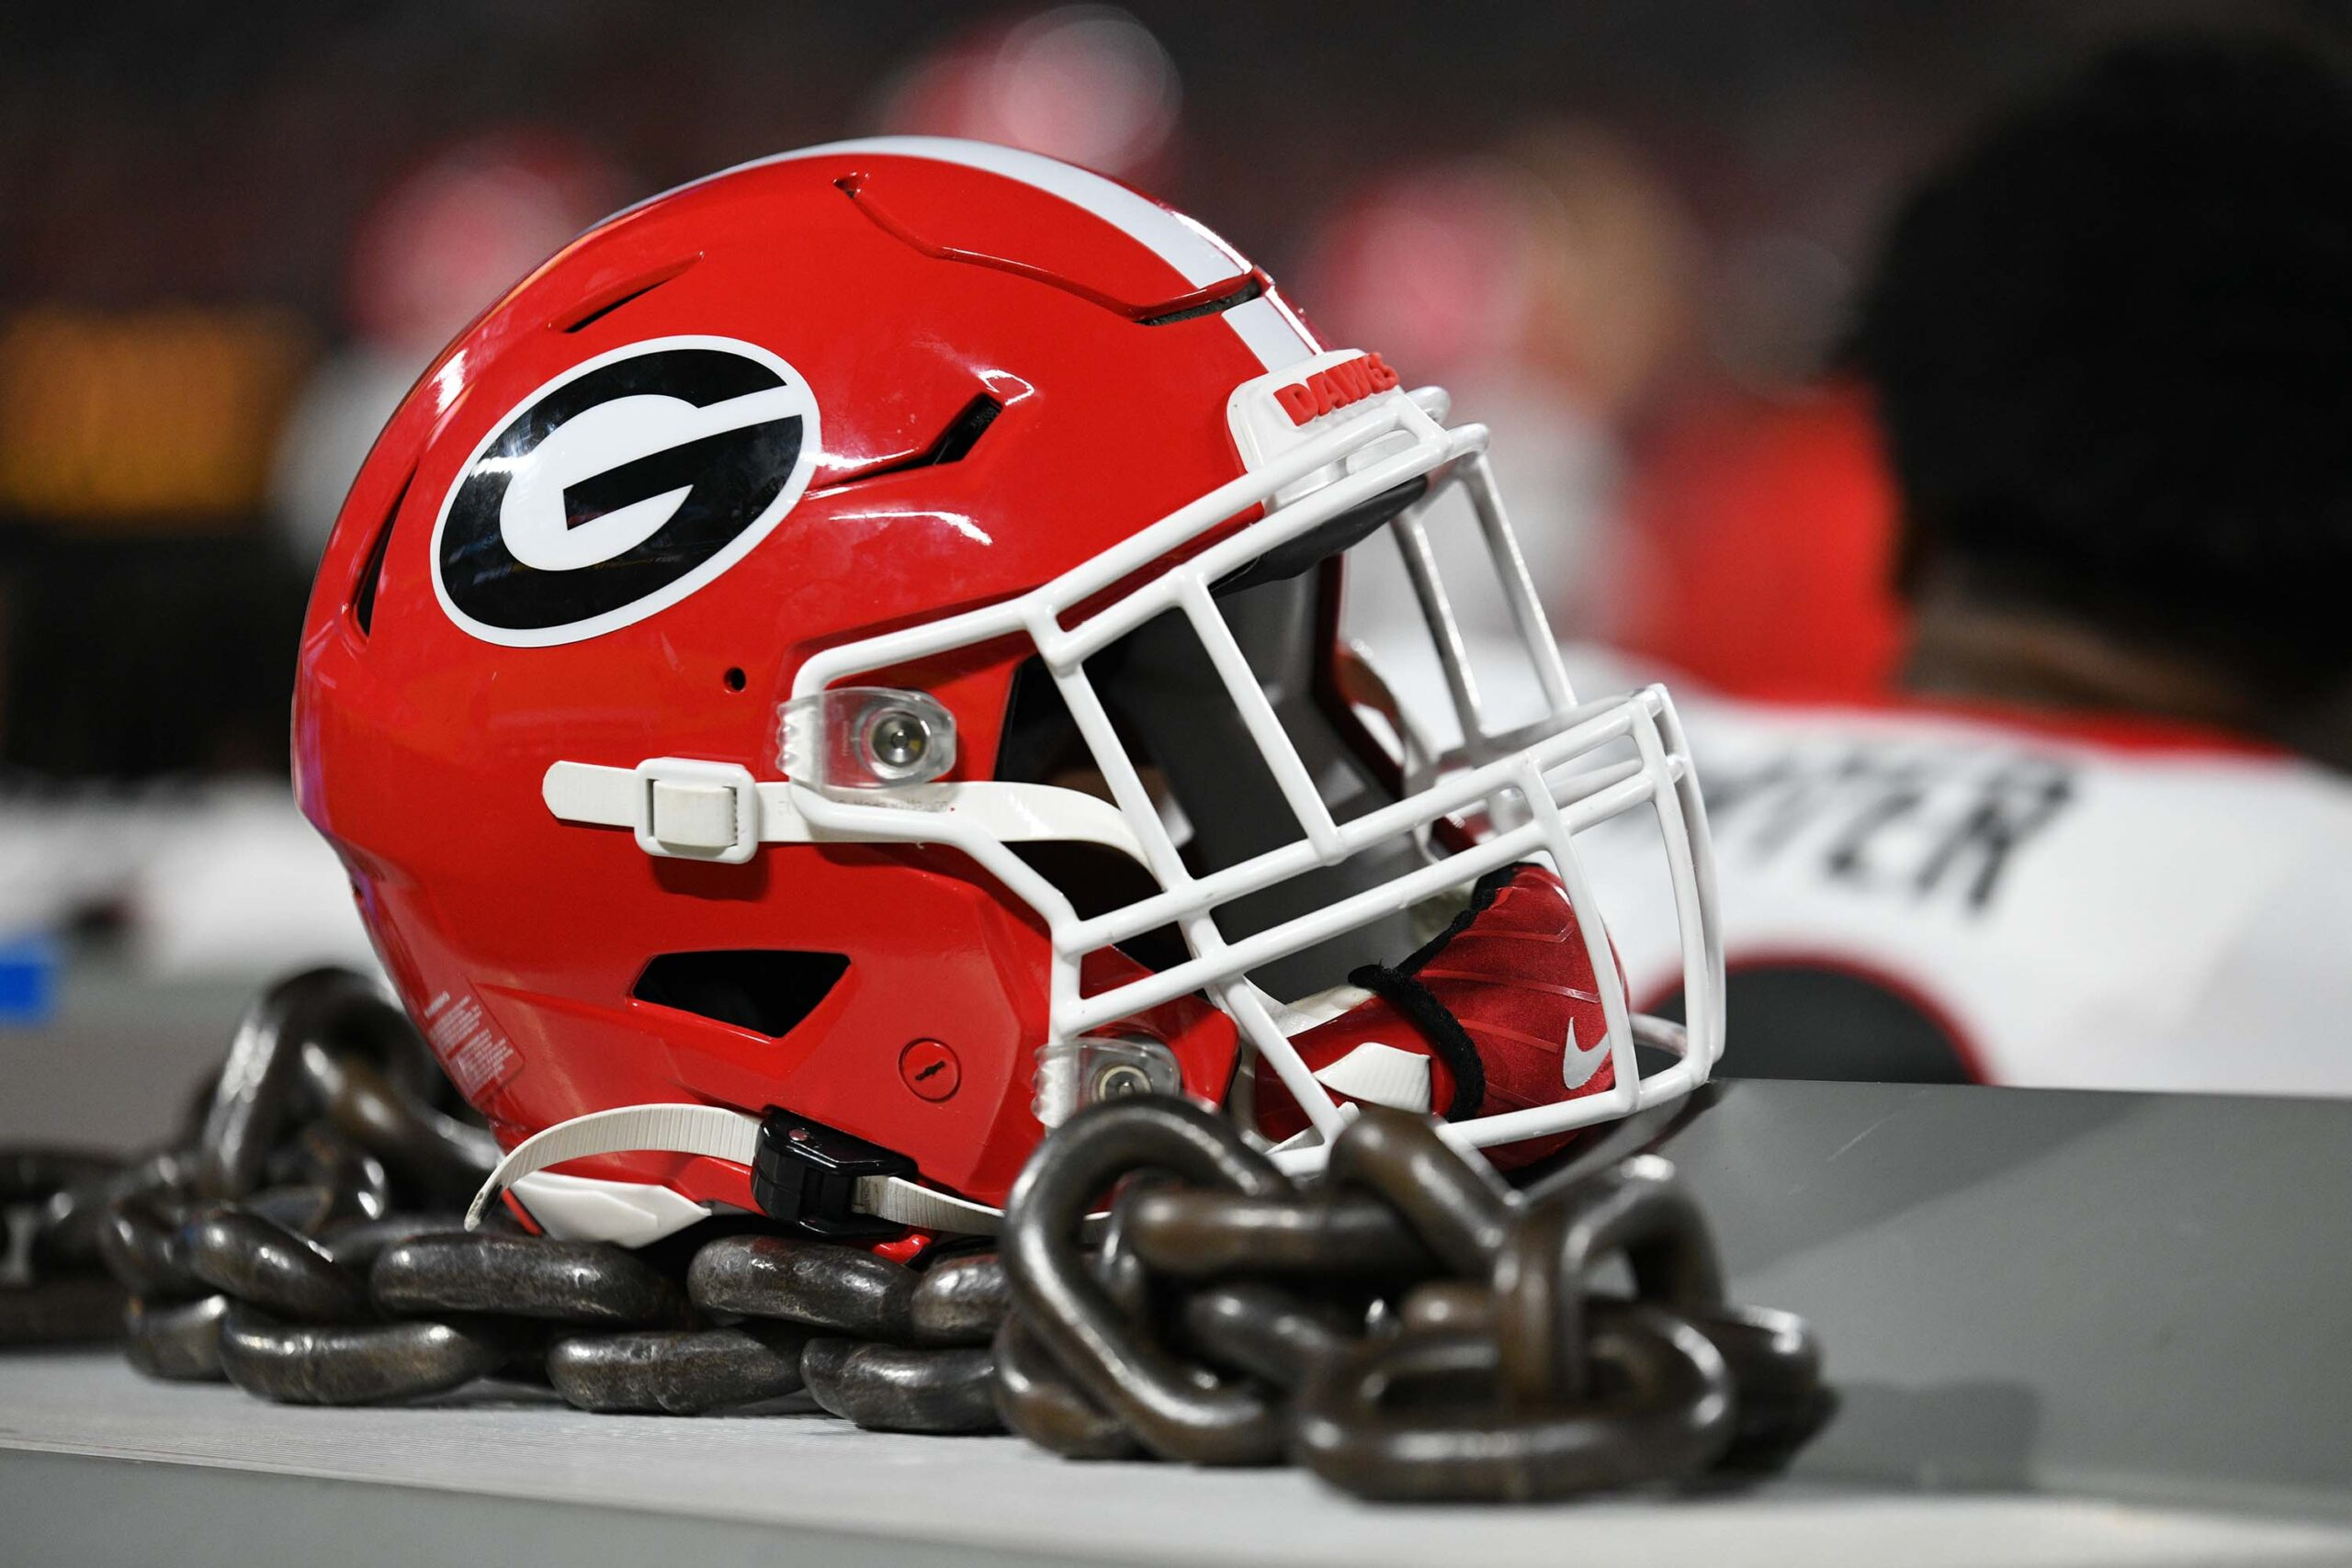 A Georgia Bulldogs helmet rests on the equipment bench during the game between the Clemson Tigers and the Georgia Bulldogs on September 4, 2021 at Bank of America Stadium in Charlotte, NC. (Photo by William Howard/Icon Sportswire via Getty Images)